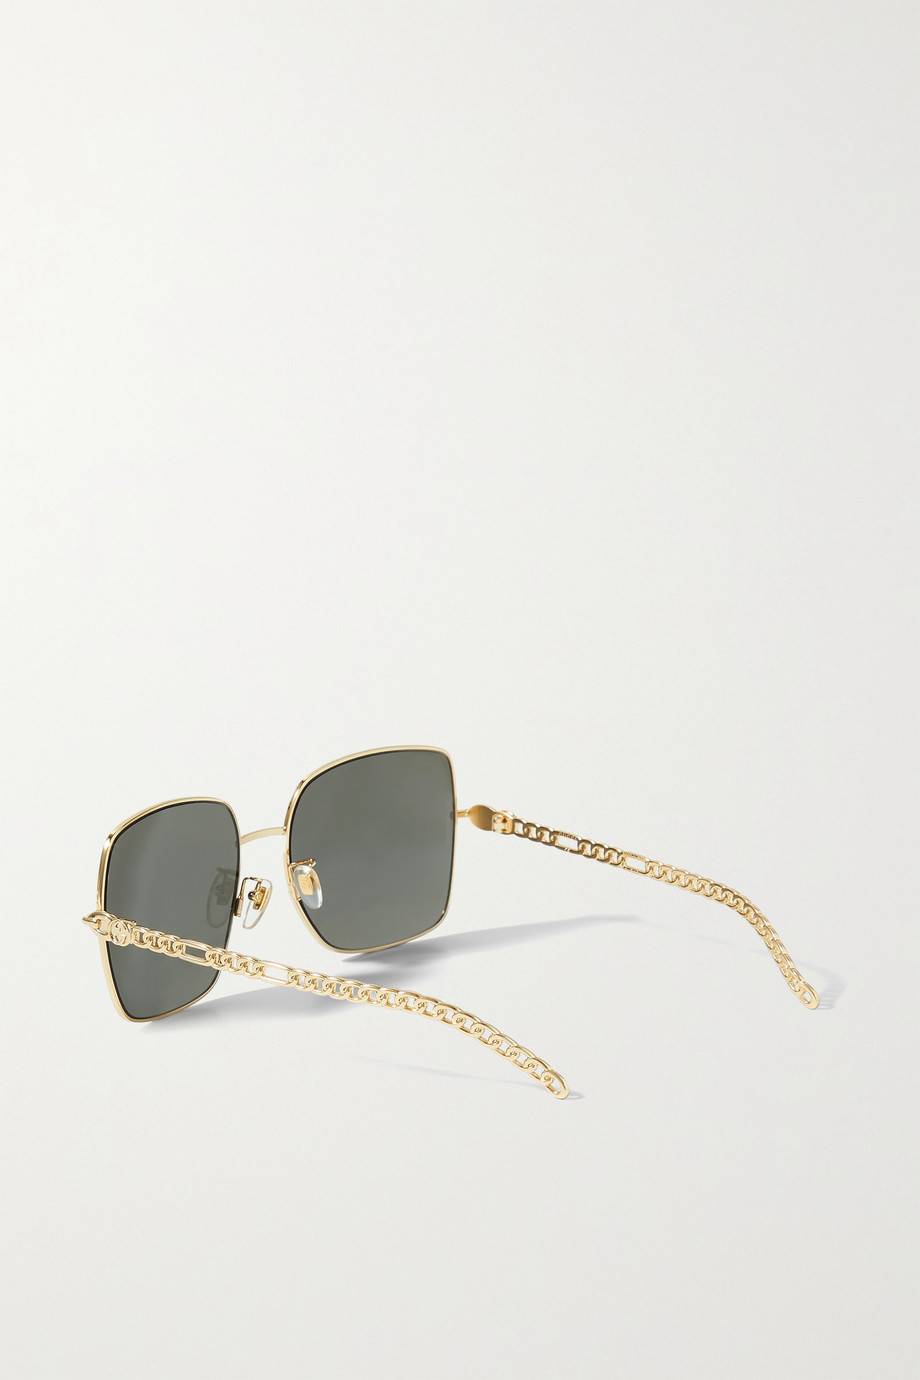 Gucci Oversized square-frame embellished gold-tone sunglasses